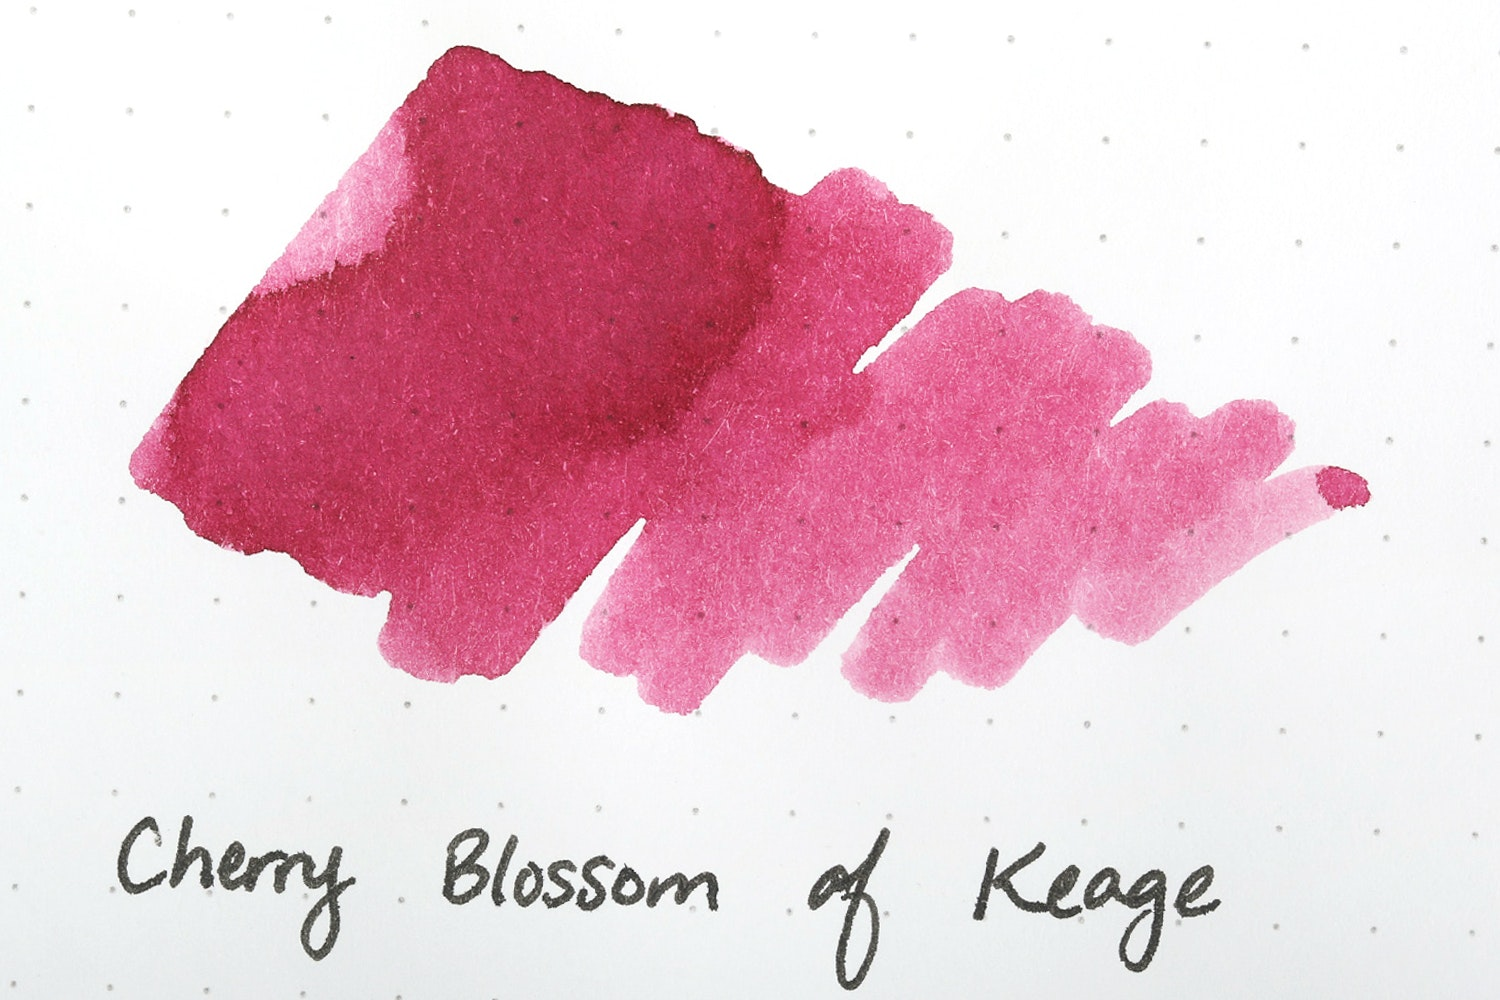 Cherry Blossom of Keage